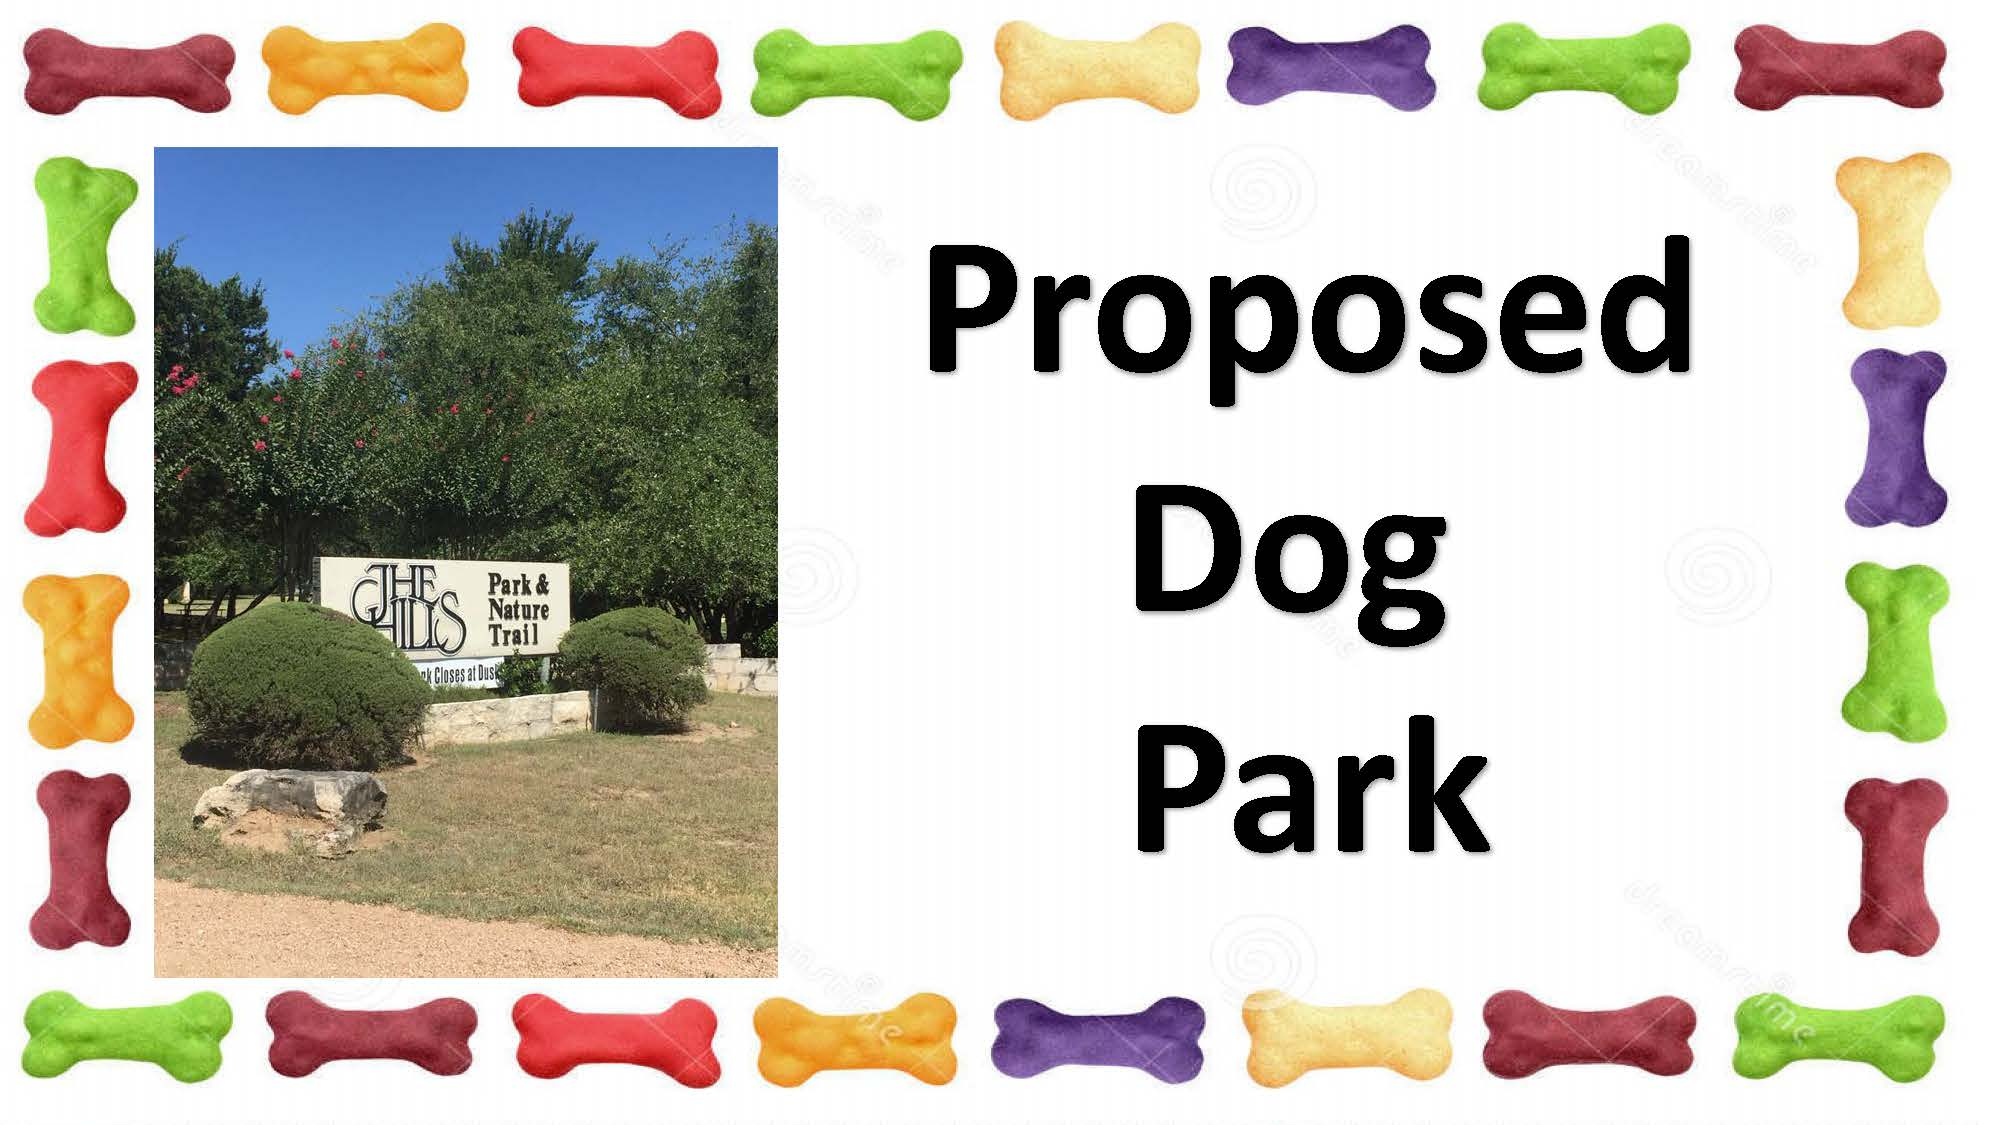 Proposed Dog Park - The Hills Parks & Nature Trail